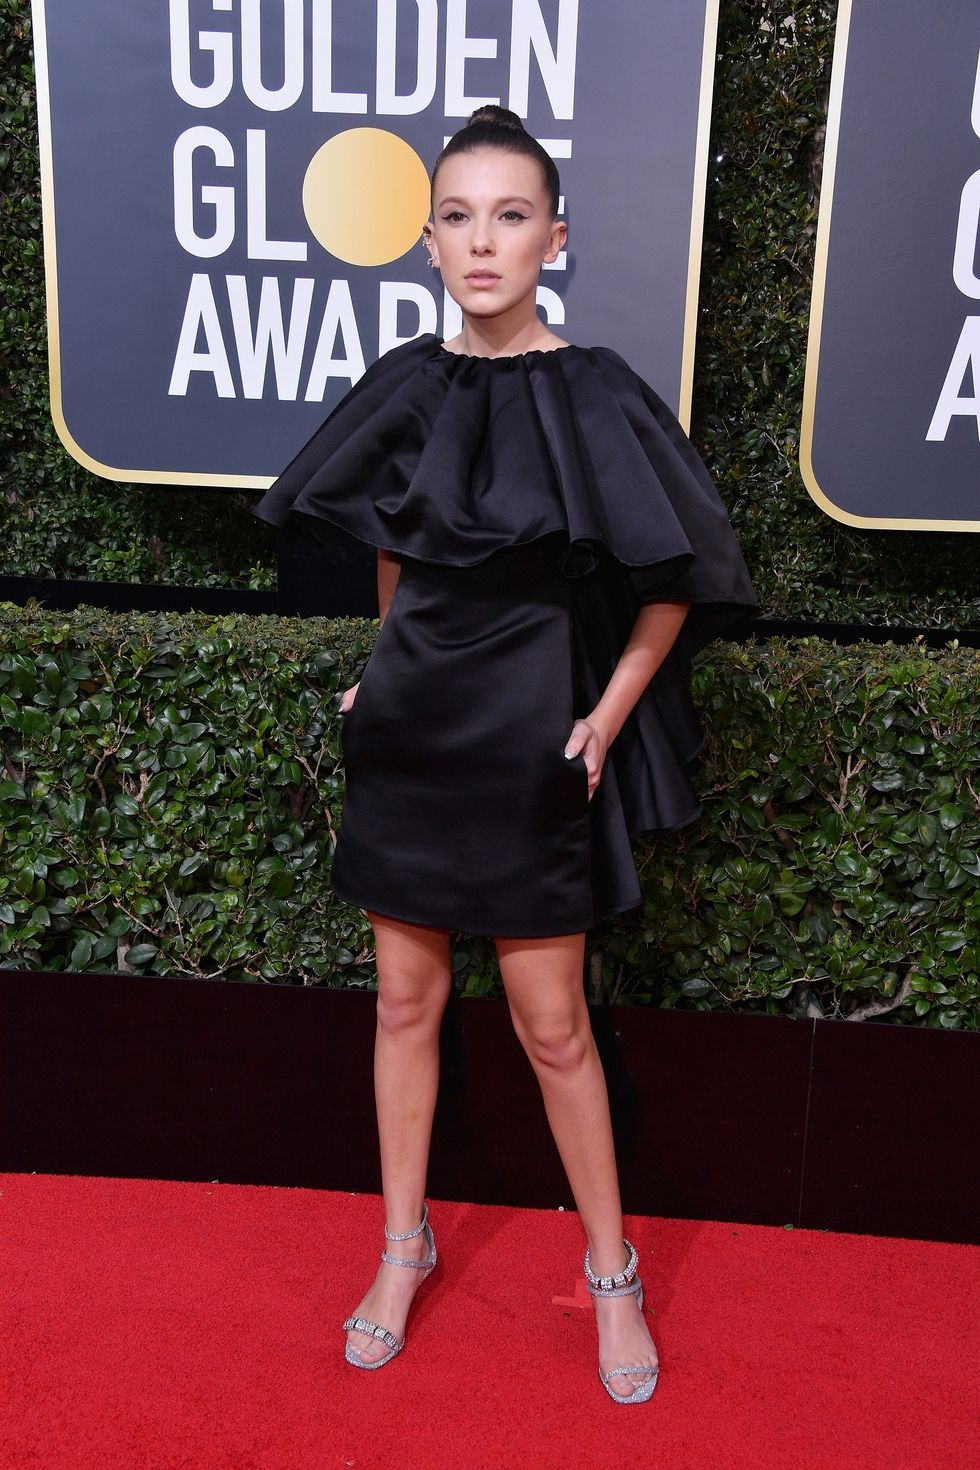 hbz-the-list-golden-globes-2018-millie-bobby-brown-1515378040.jpg